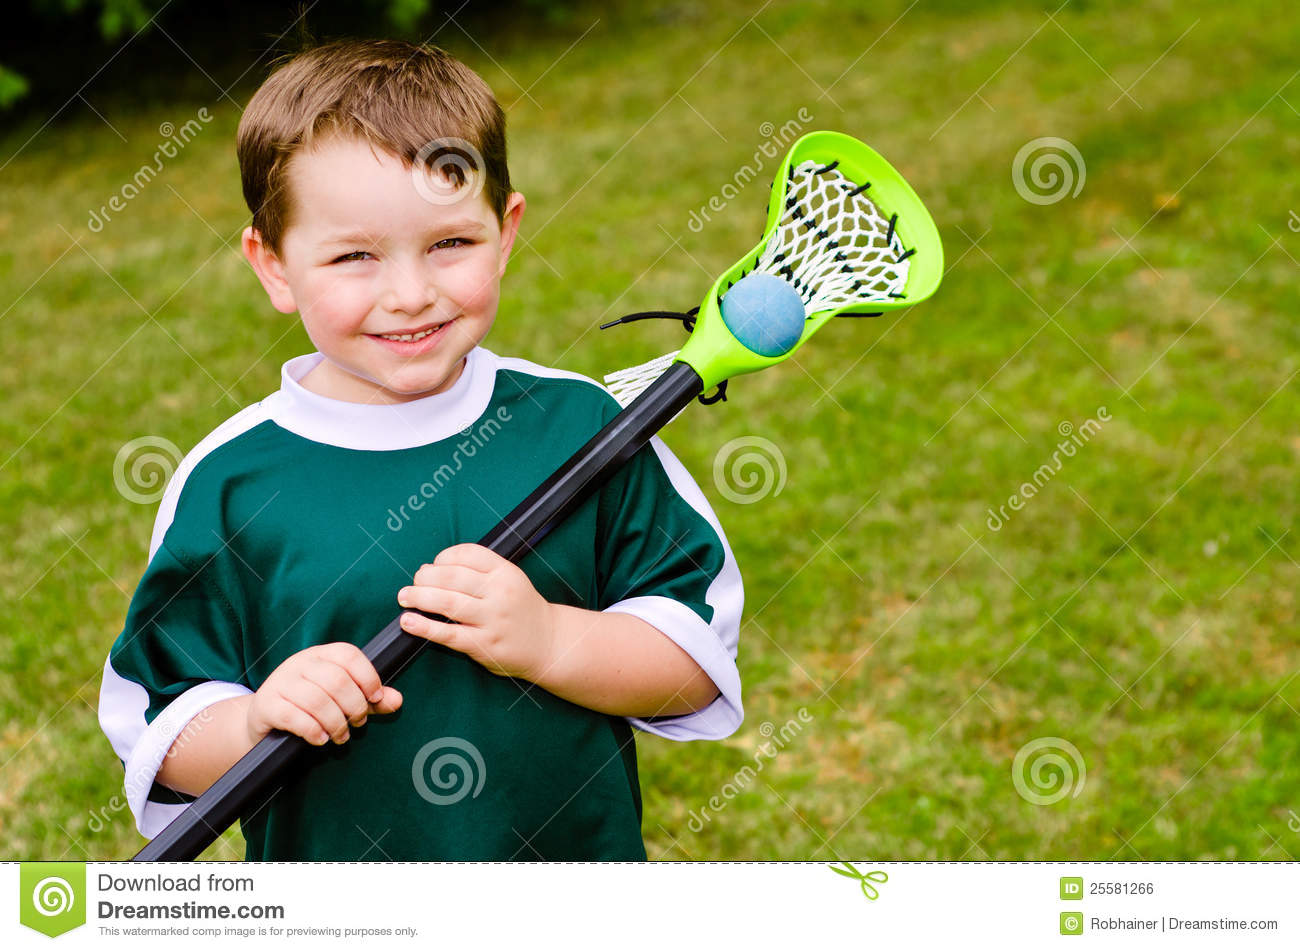 Happy young child lacrosse player